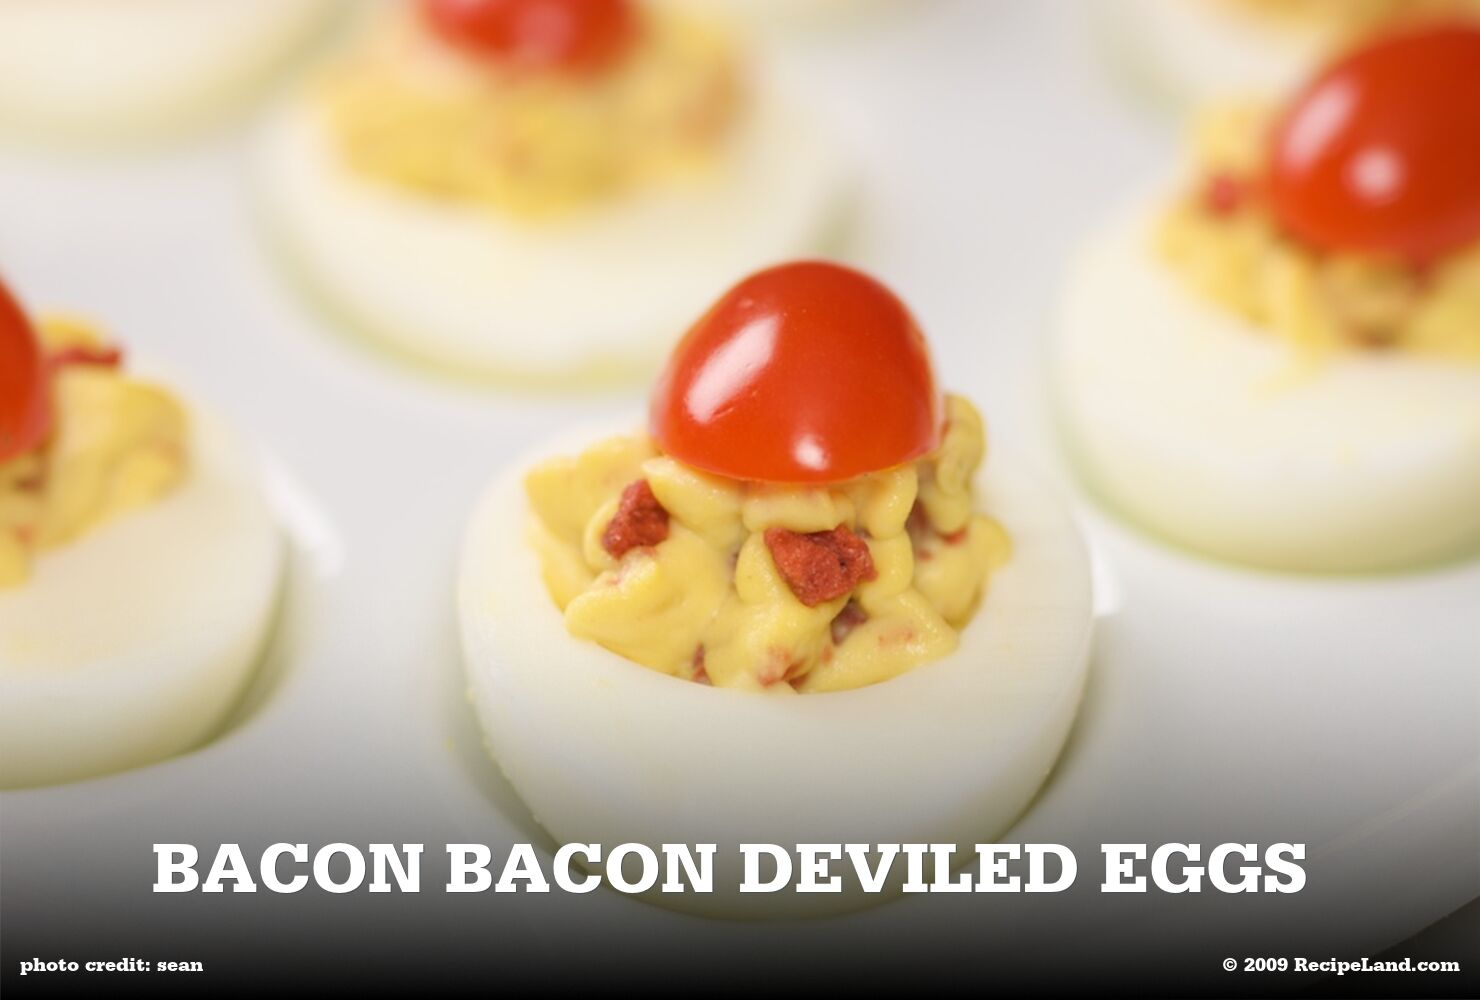 Bacon Bacon Deviled Eggs